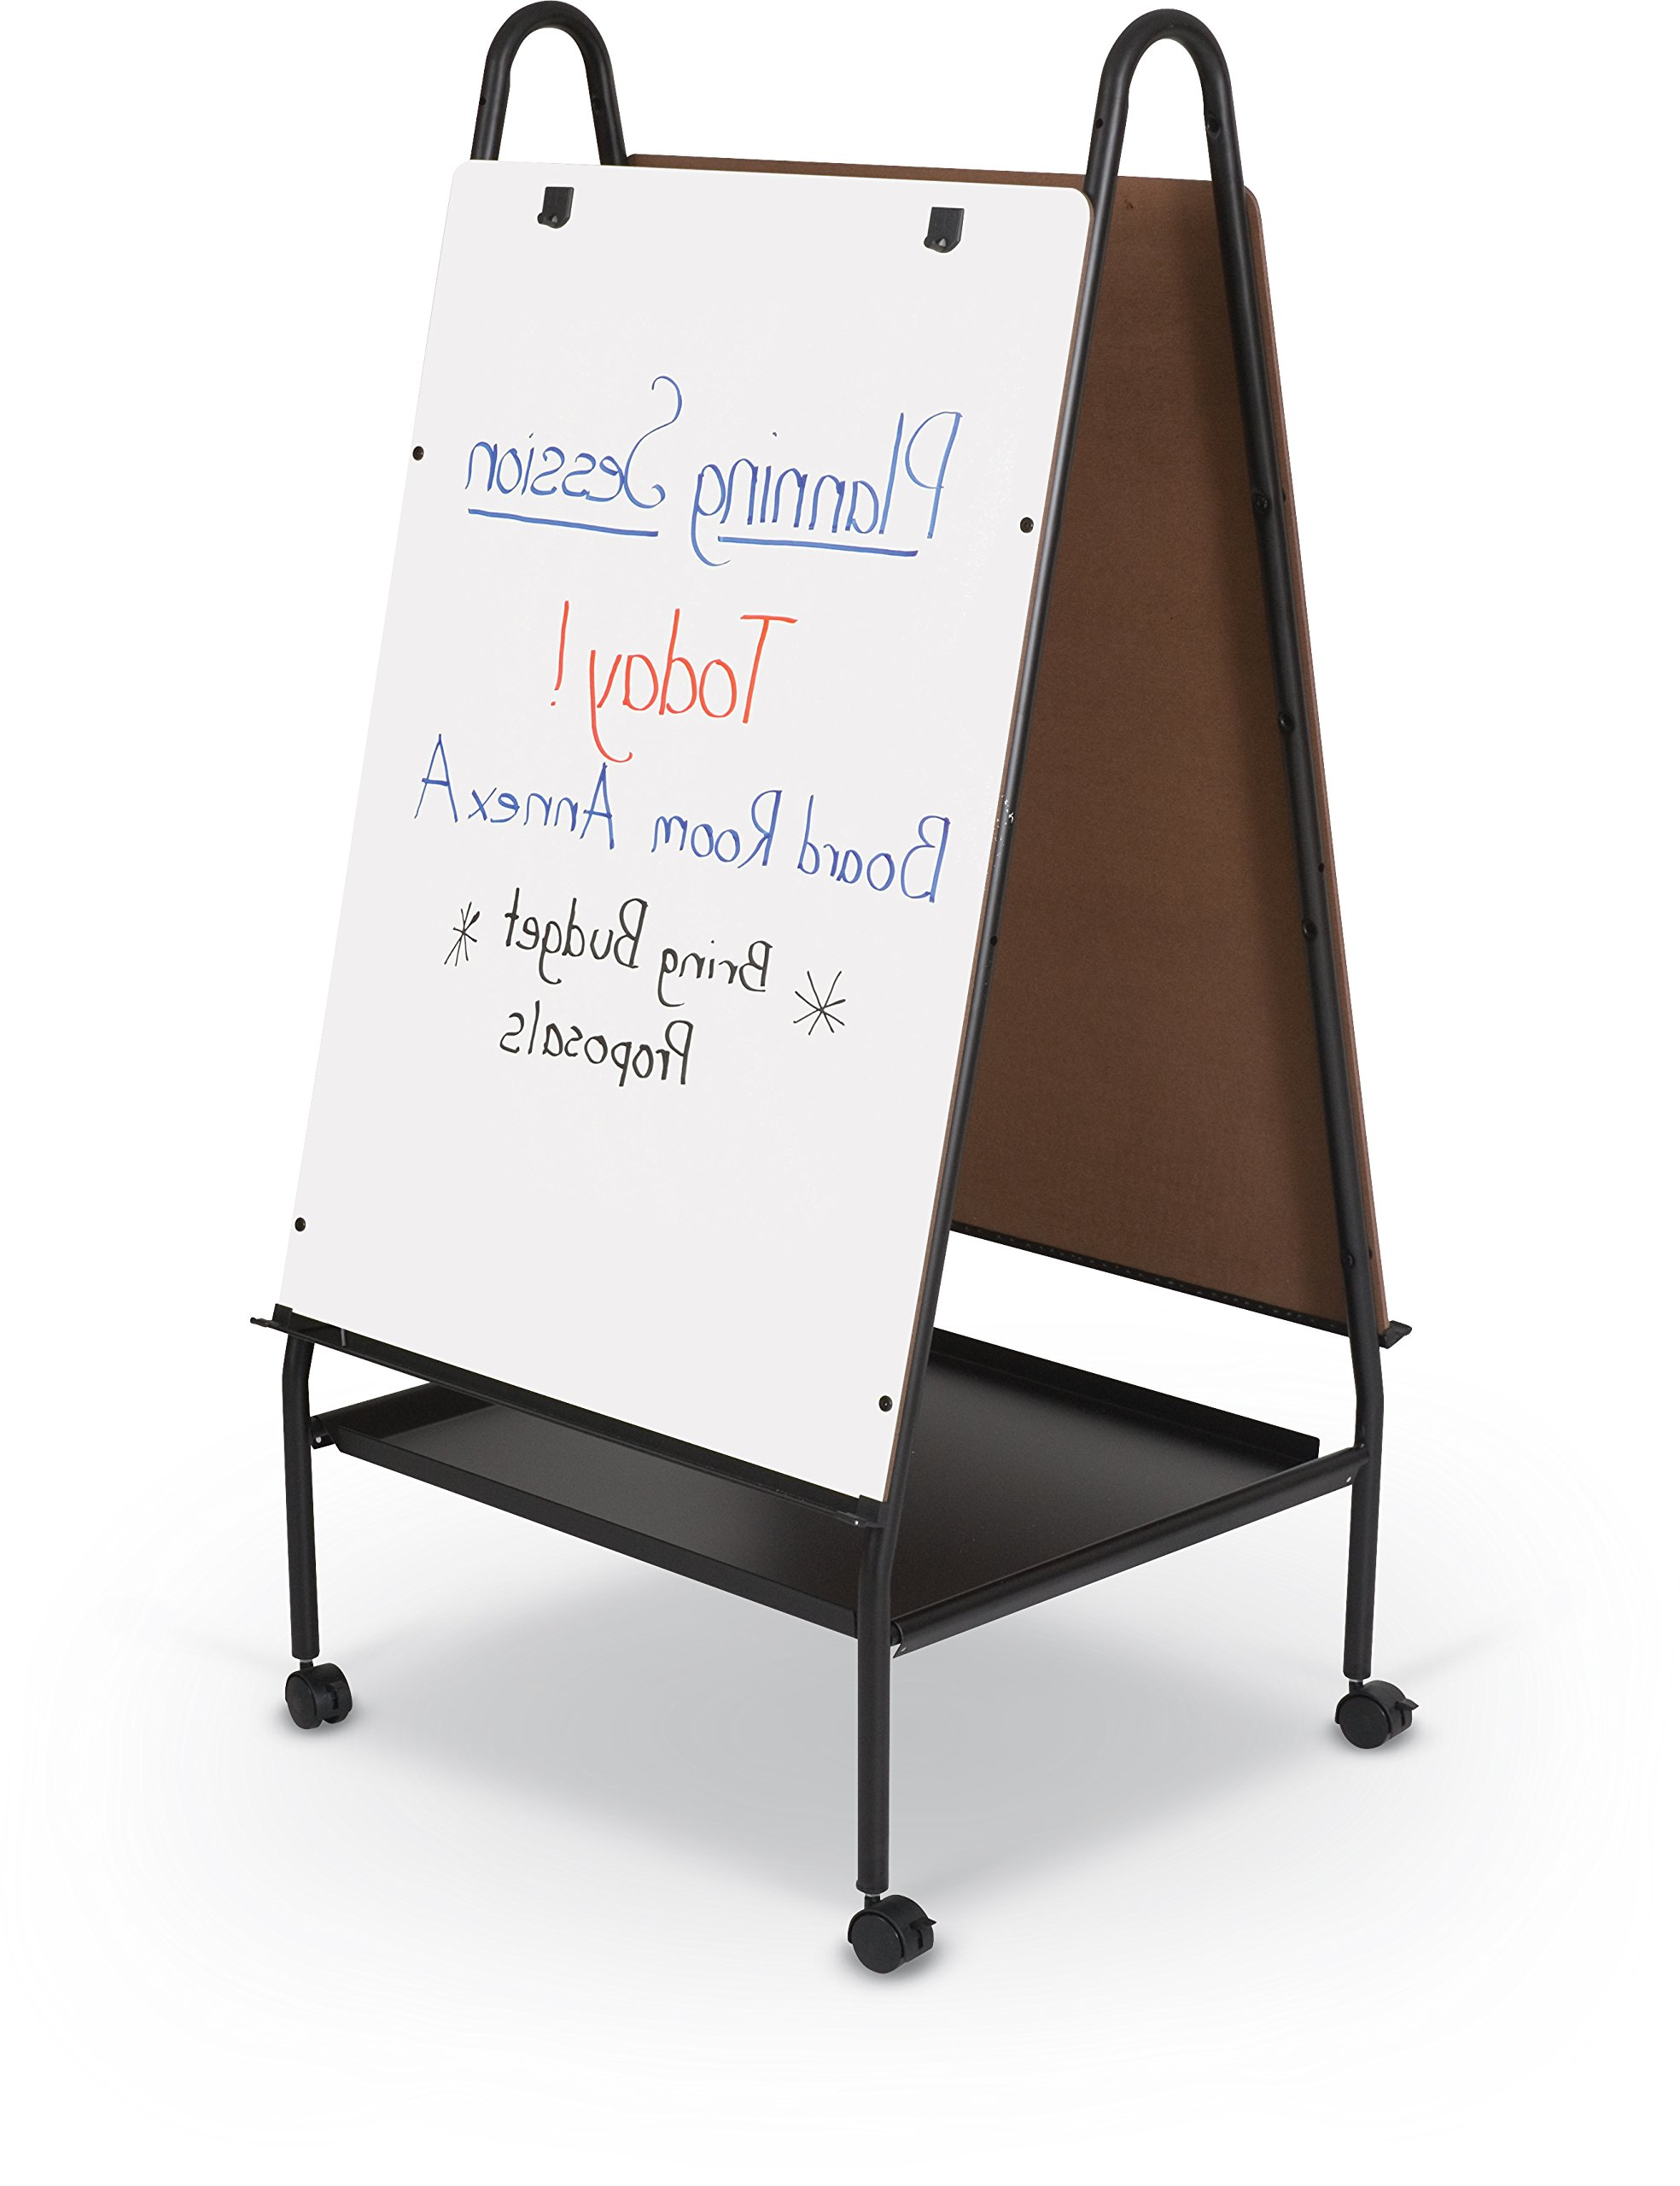 Best-Rite Wheasel, Double Sided Dry Erase Melamine Whiteboard Easel, 65''H x 28.75''W x 27''D (759)